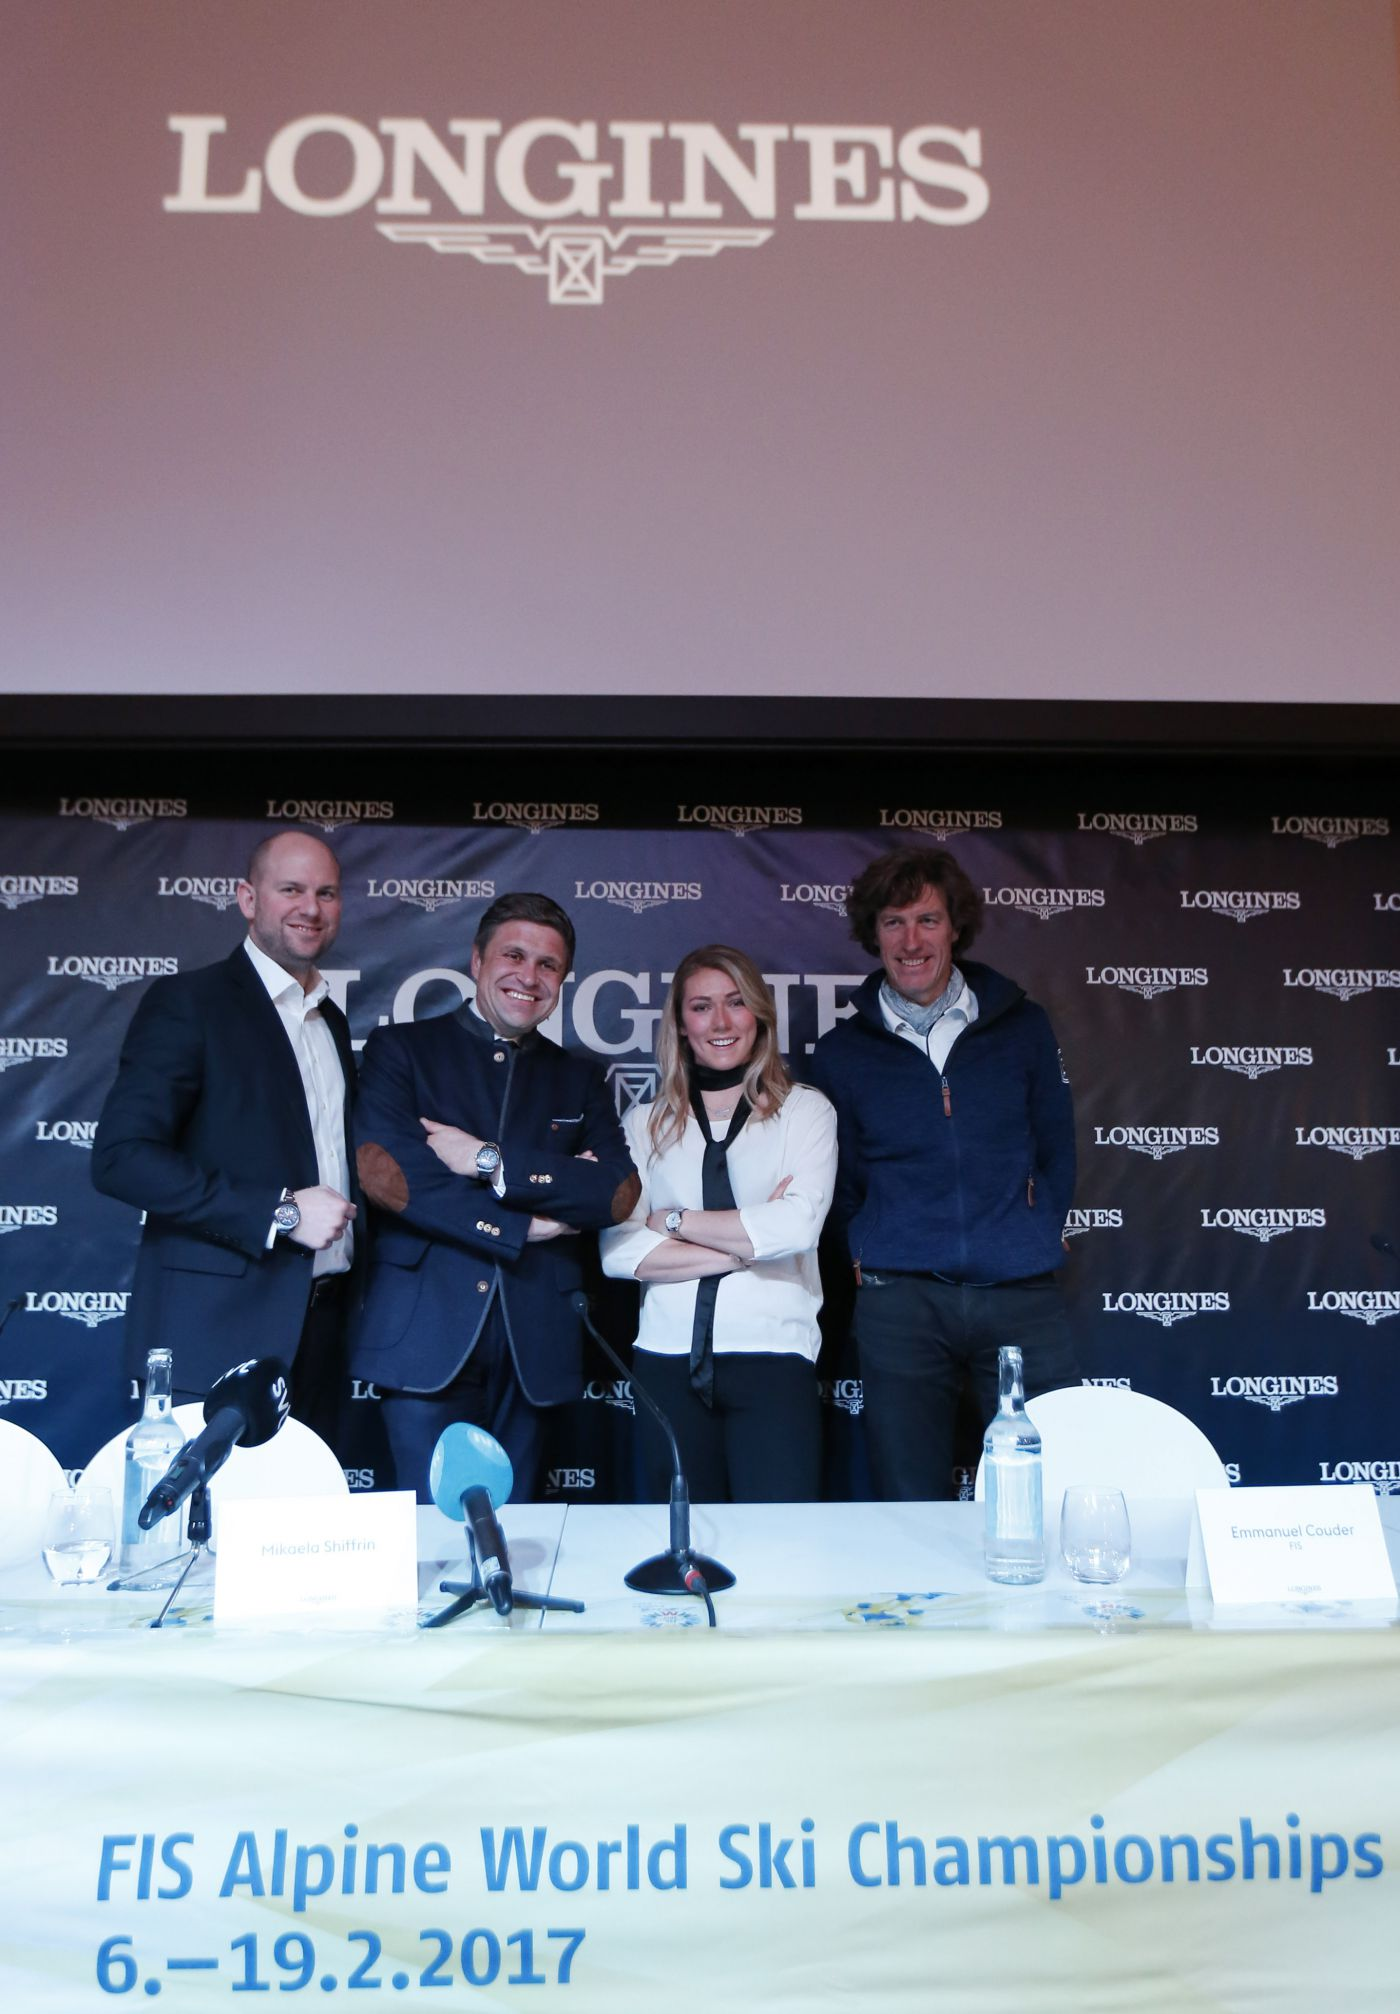 Longines Alpine Skiing Event: Official launch of the Longines Live Alpine Data system at the FIS Alpine World Ski Championships St. Moritz 2017 2